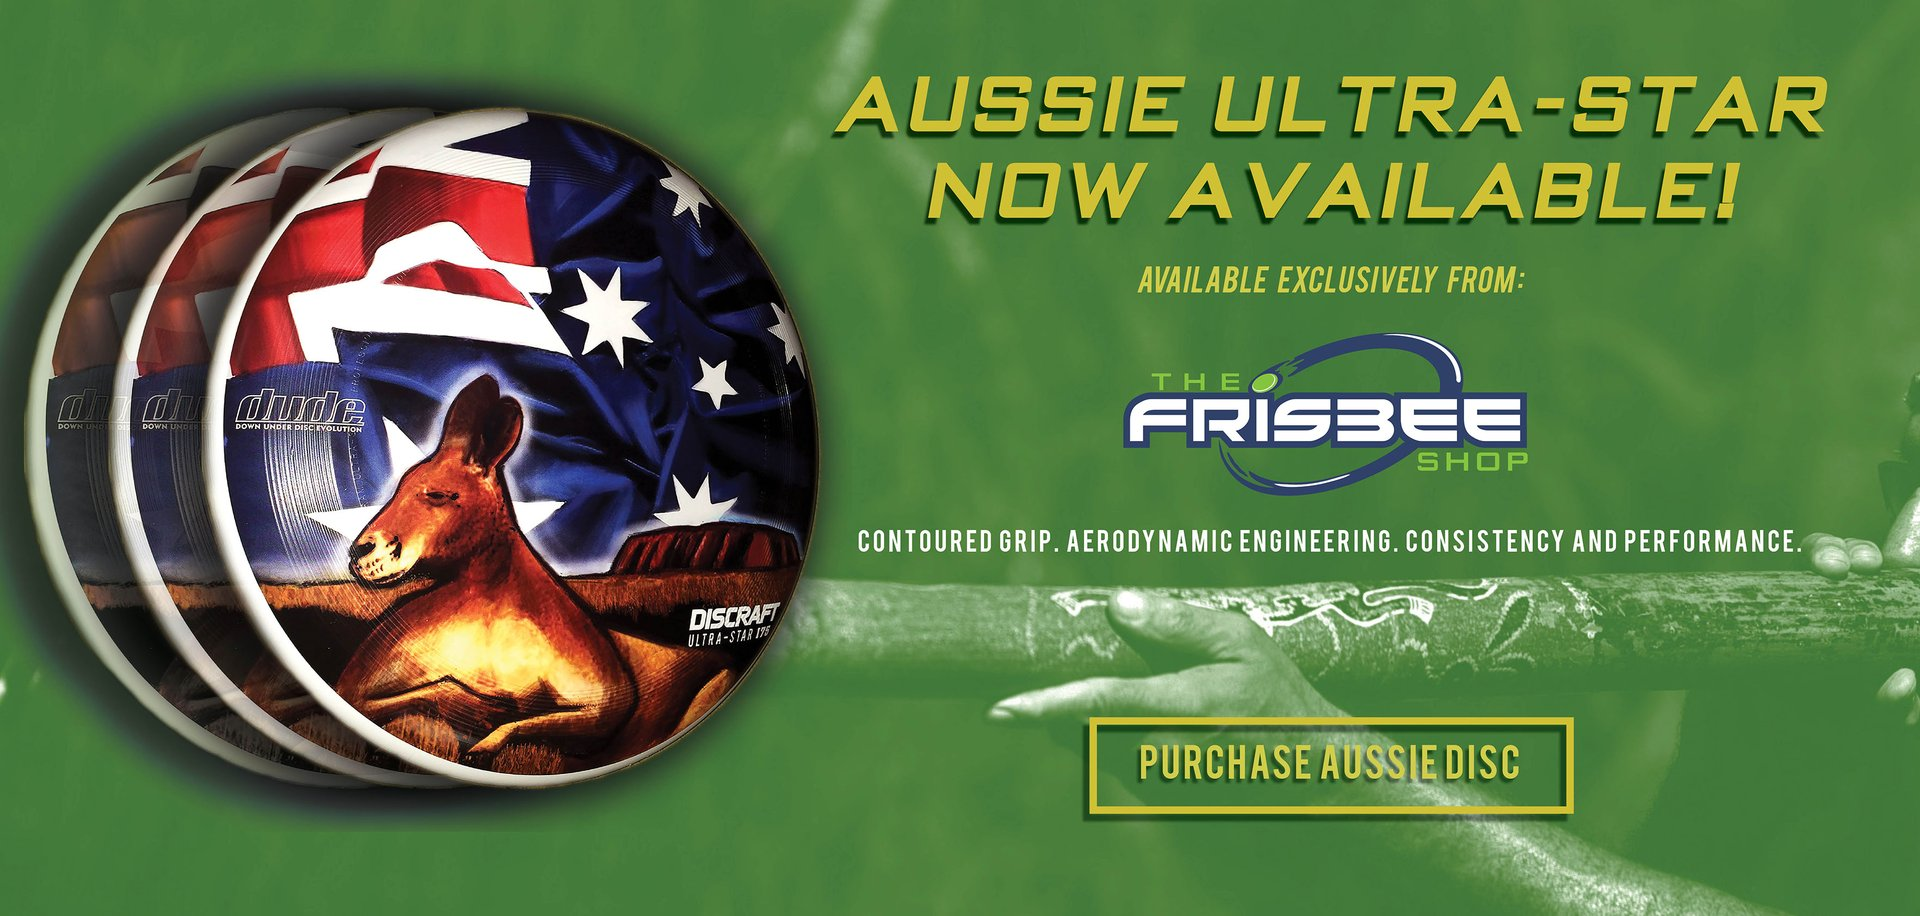 The Frisbee Shop - Competition White Discraft Ultra-Star